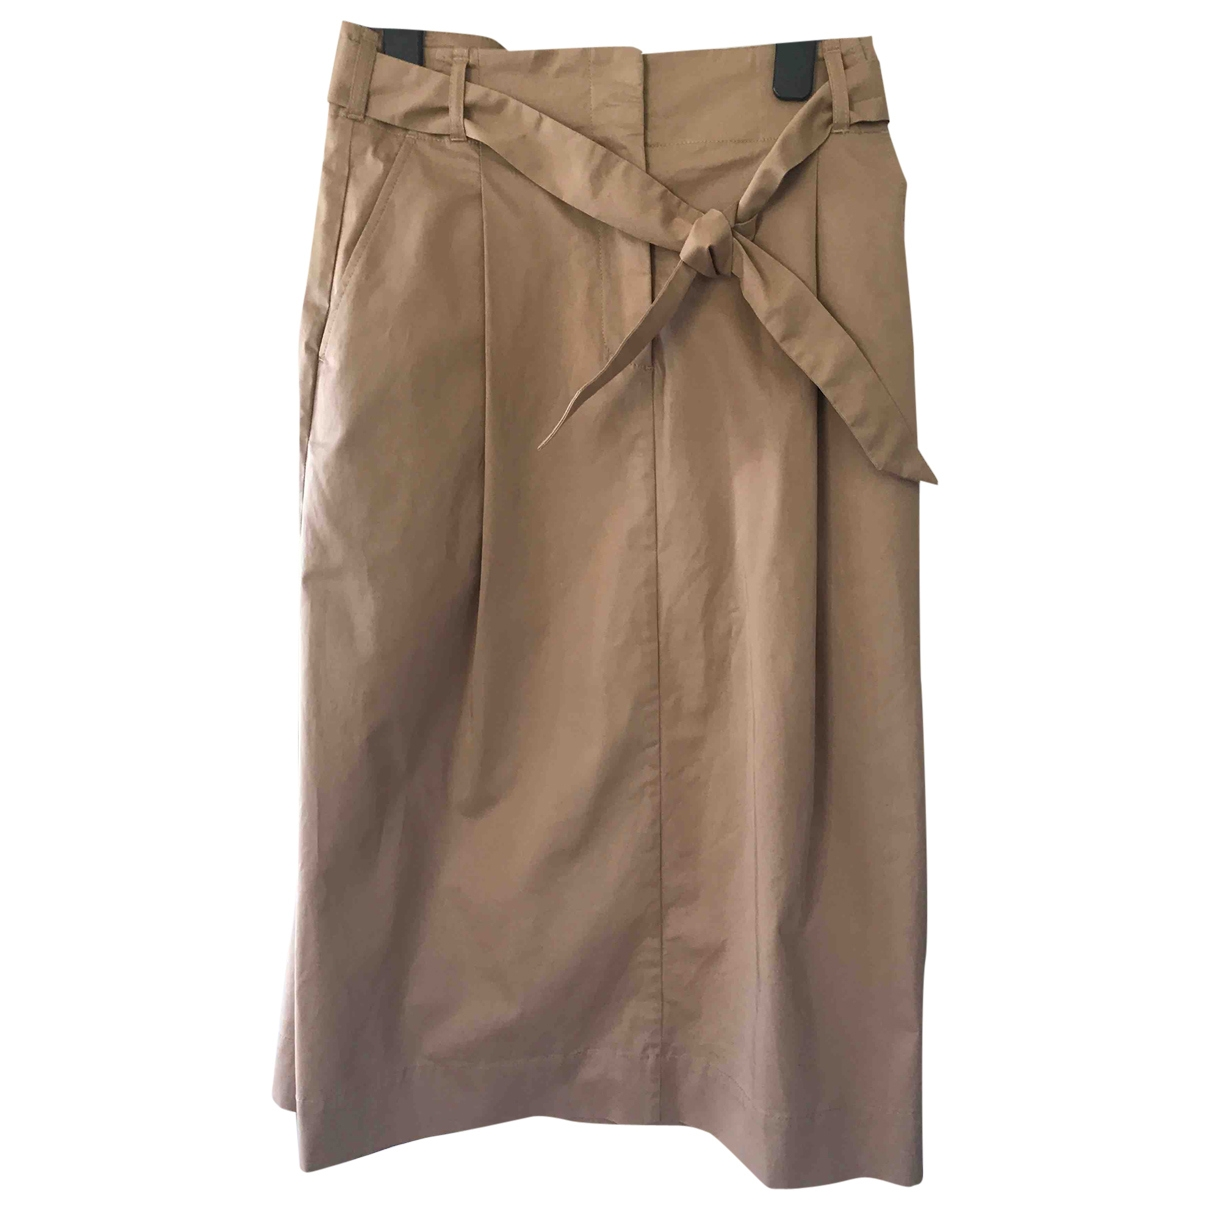 Ymc \N Beige Cotton skirt for Women 10 UK